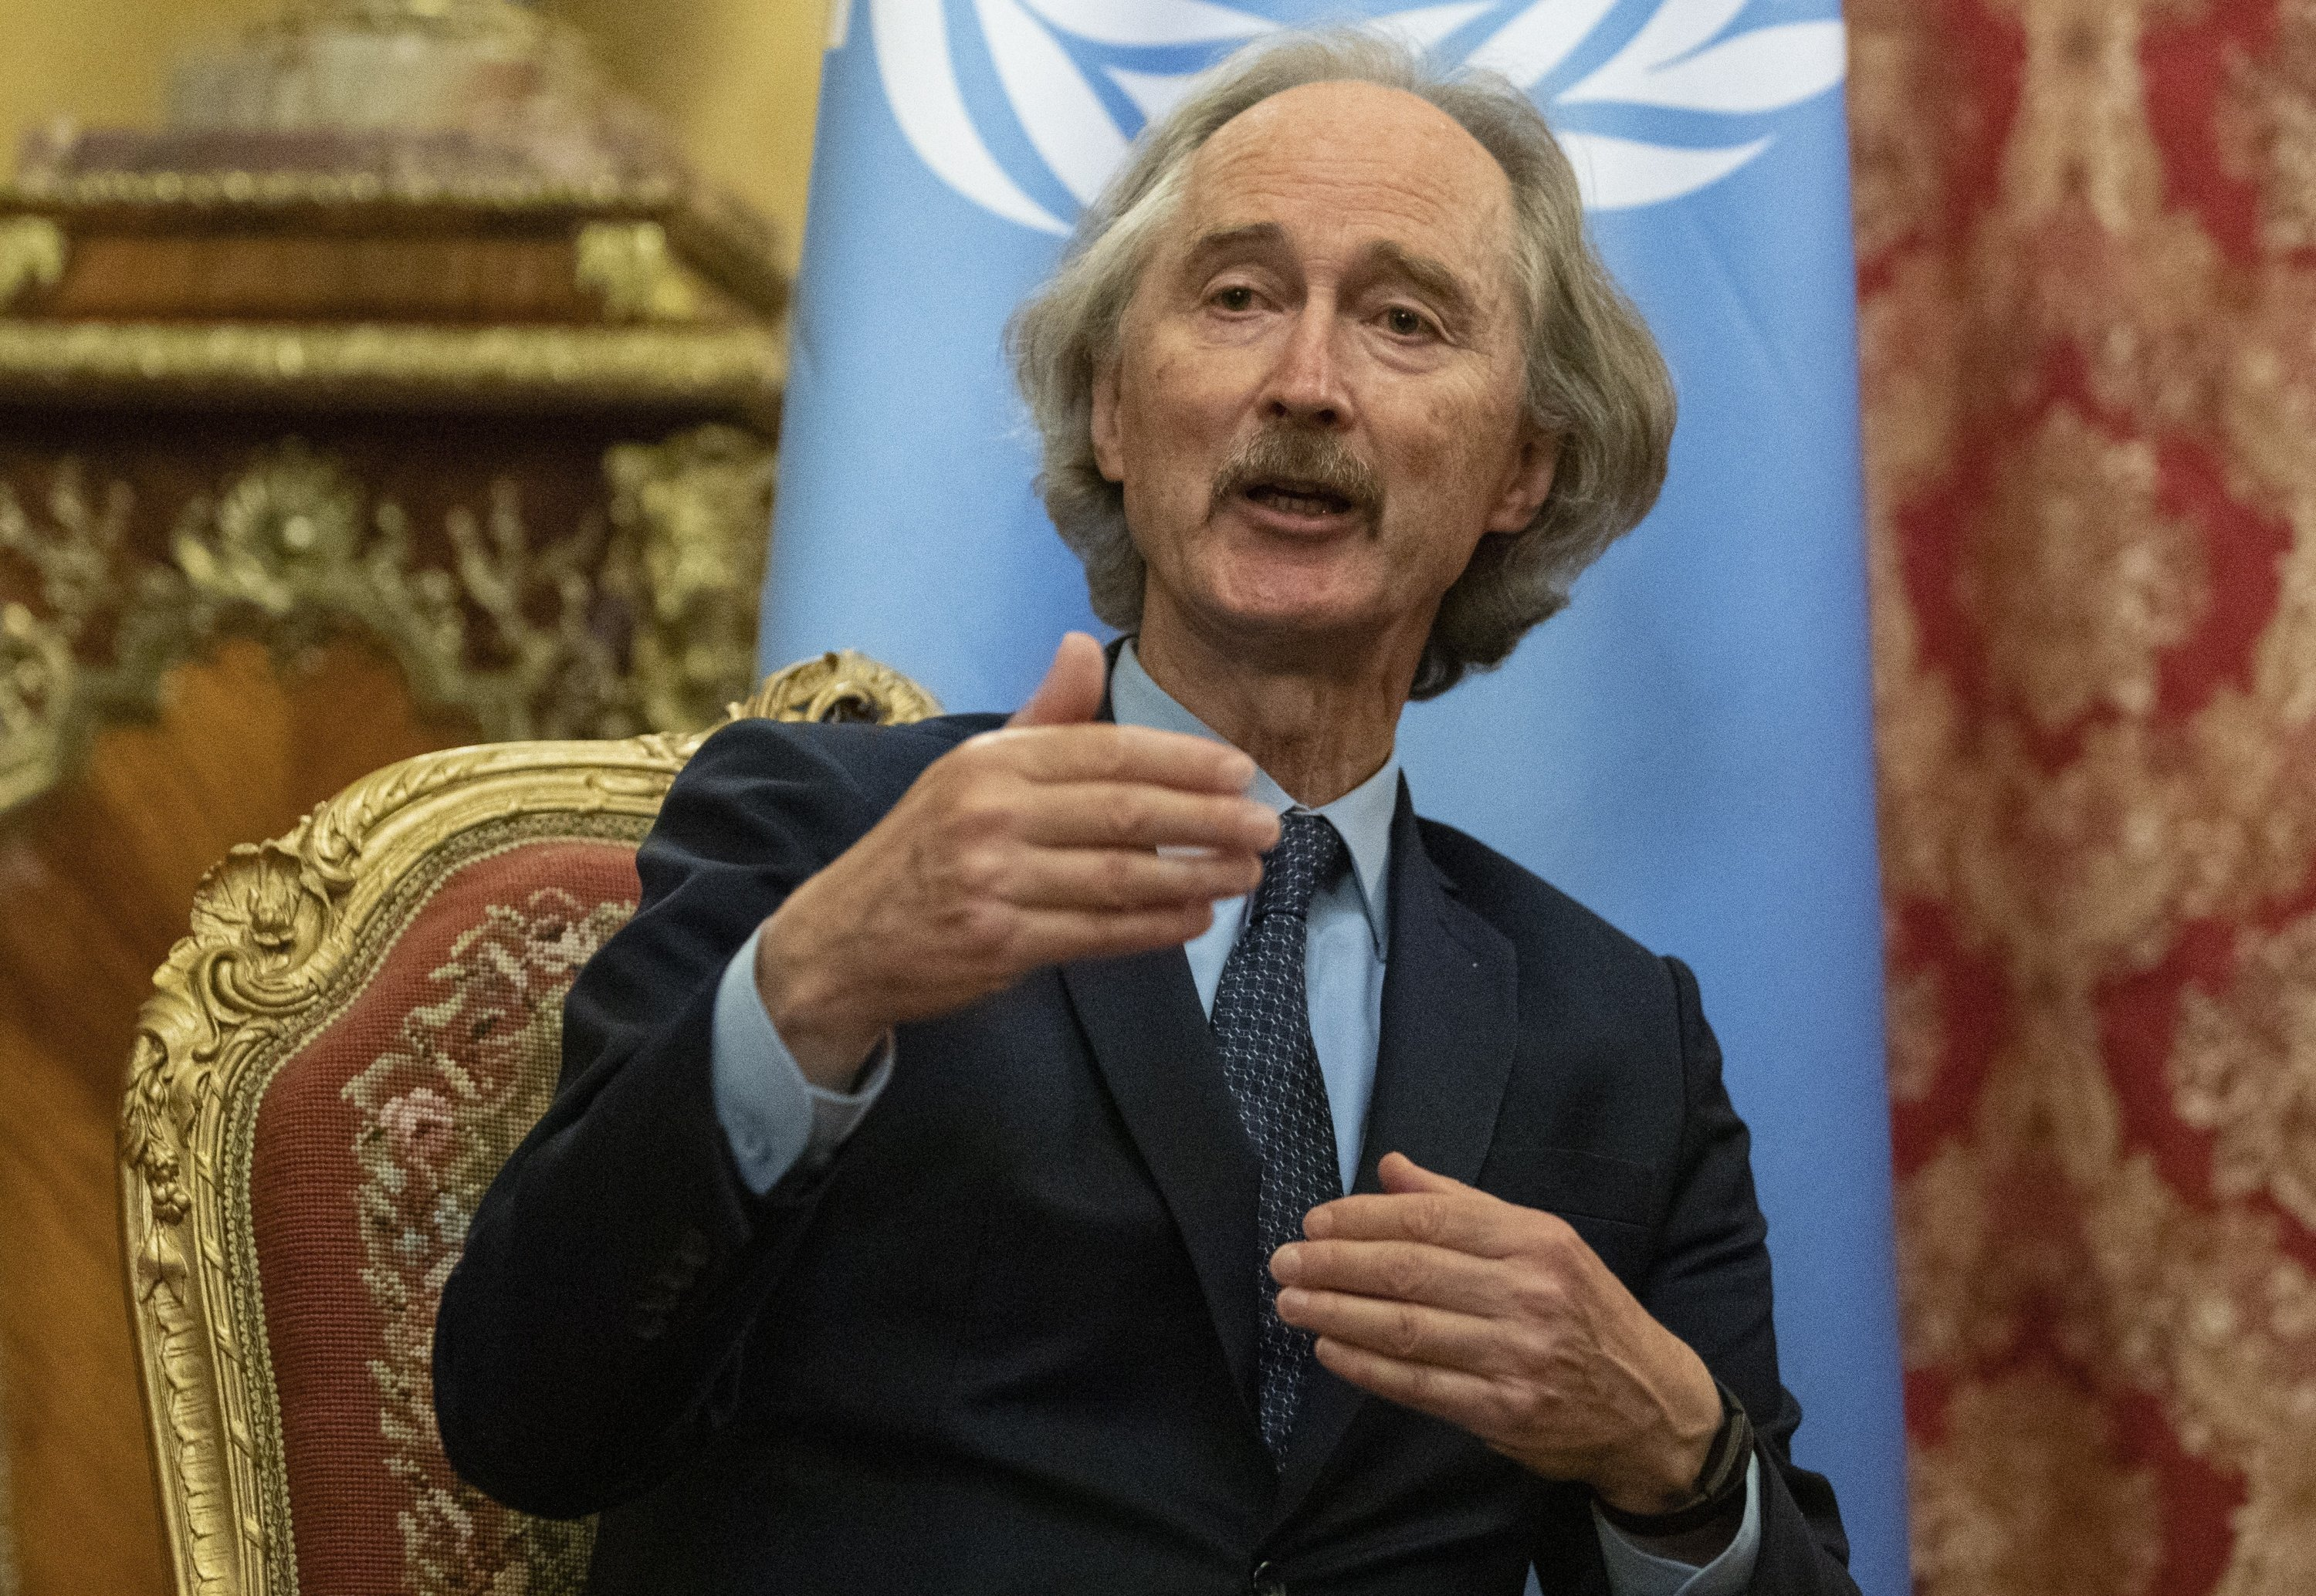 United Nations Special Envoy for Syria Geir Pedersen gestures during a joint news conference with Russian Foreign Minister Sergey Lavrov in Moscow, Russia, July 22, 2021.  (AP Photo)